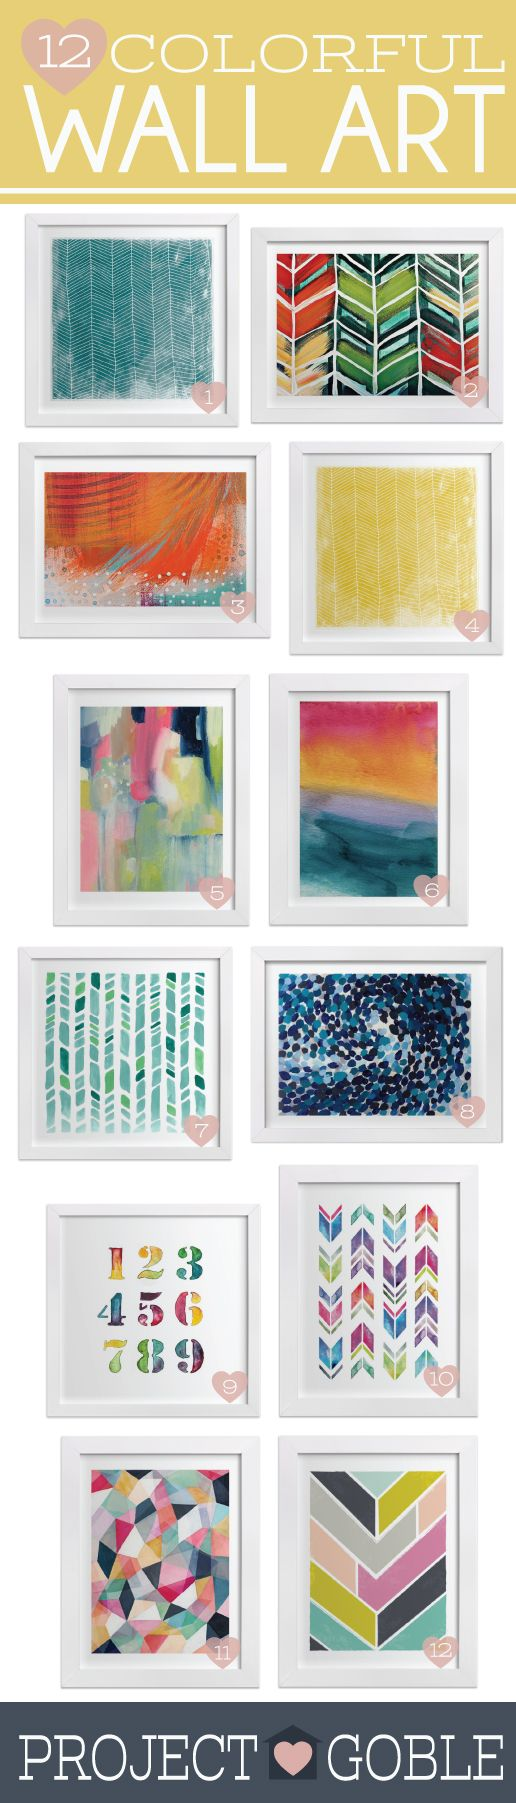 12 Fun and Colorful pieces of Wall Art - Could be used in living room, gallery wall, kitchen, bathroom, bedroom, or office. Click for sources.